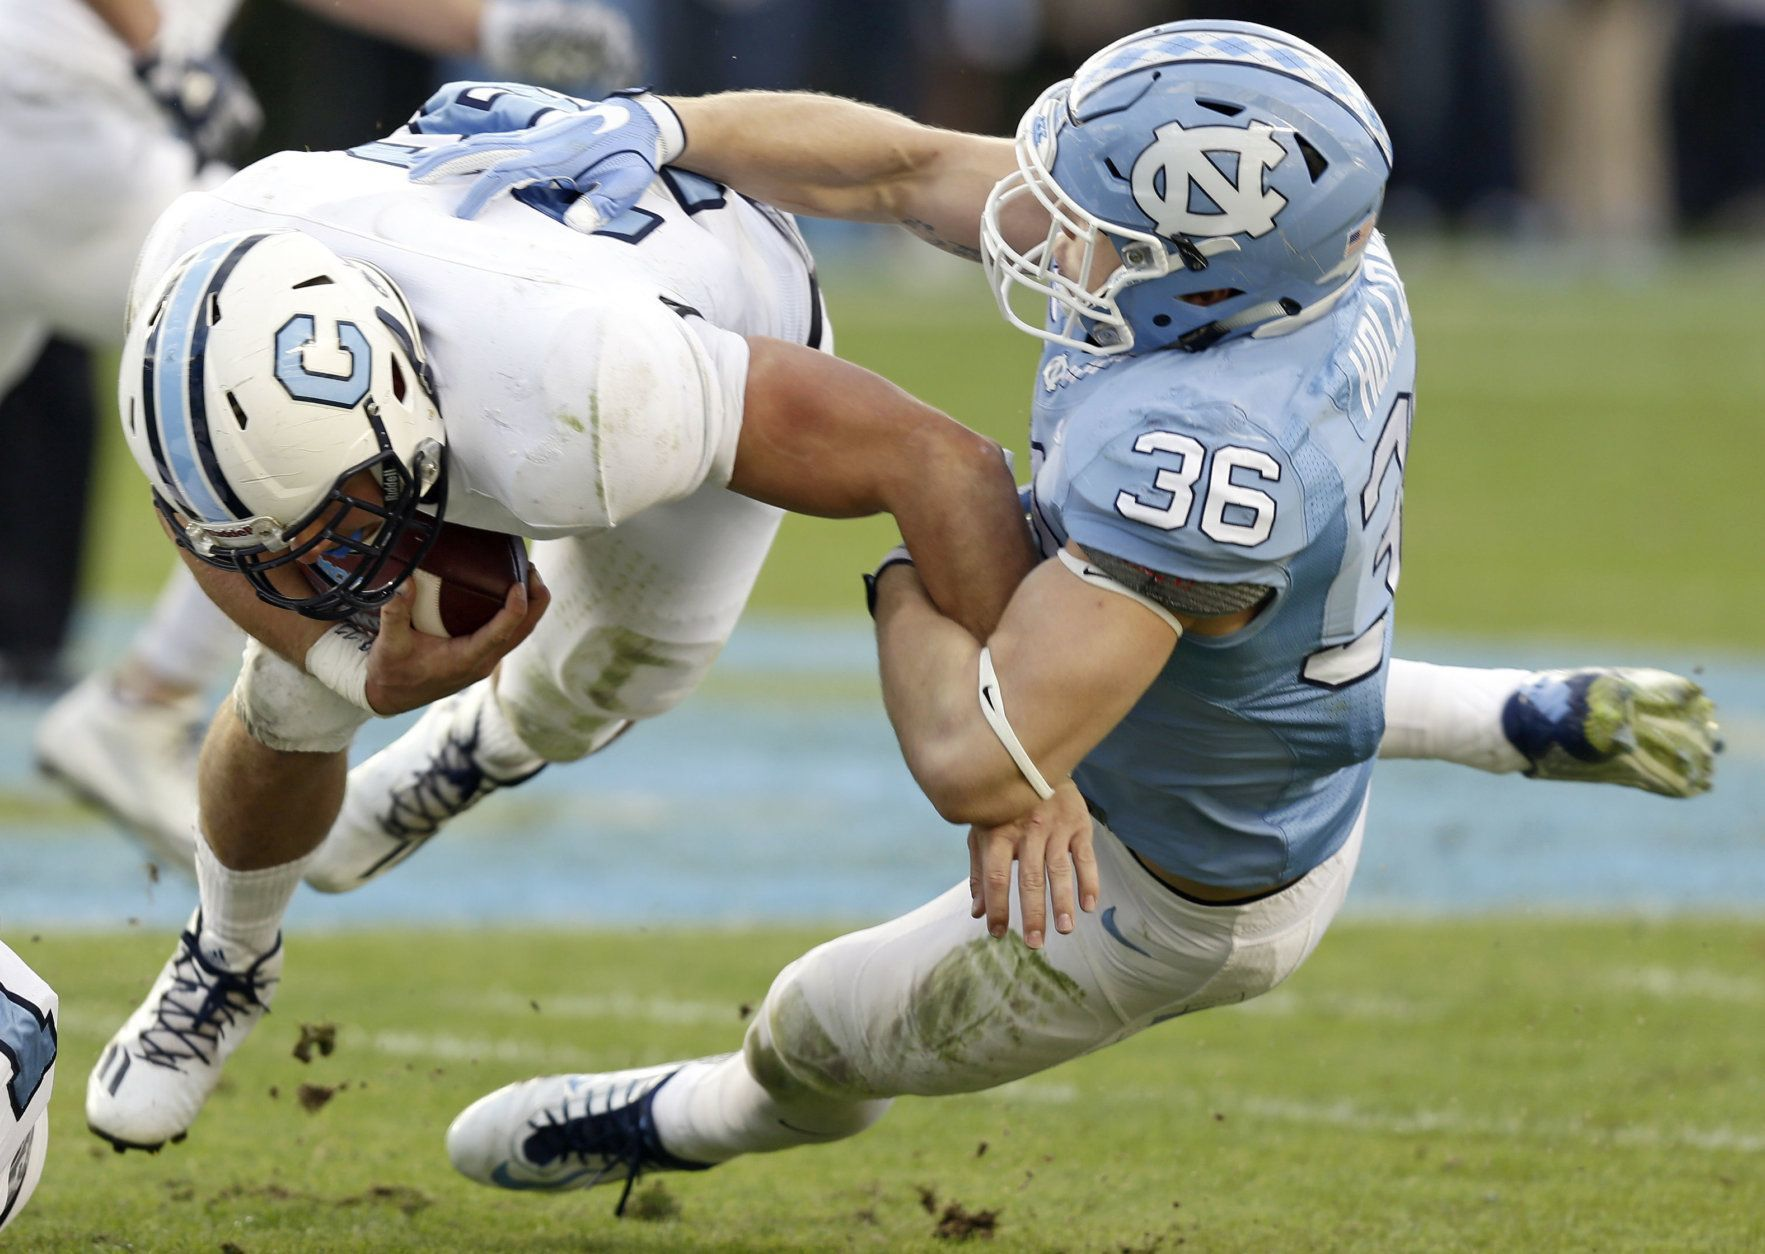 North Carolina's Cole Holcomb (36) tackles The Citadel's Tyler Renew during the first half of an NCAA college football game in Chapel Hill, N.C., Saturday, Nov. 19, 2016. (AP Photo/Gerry Broome)